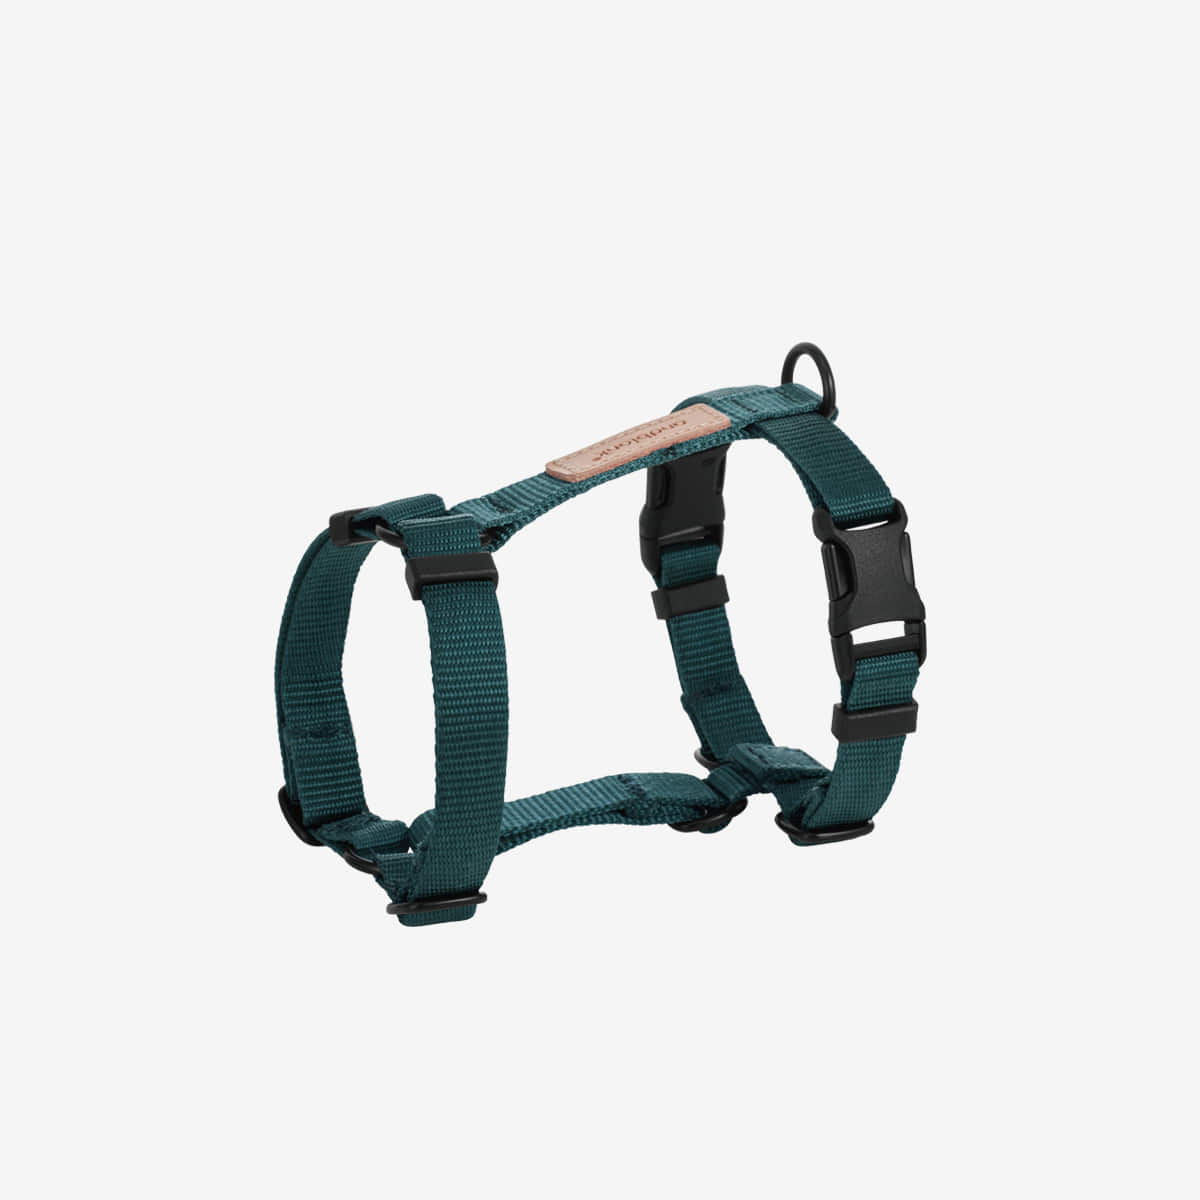 앤블랭크 harness : green